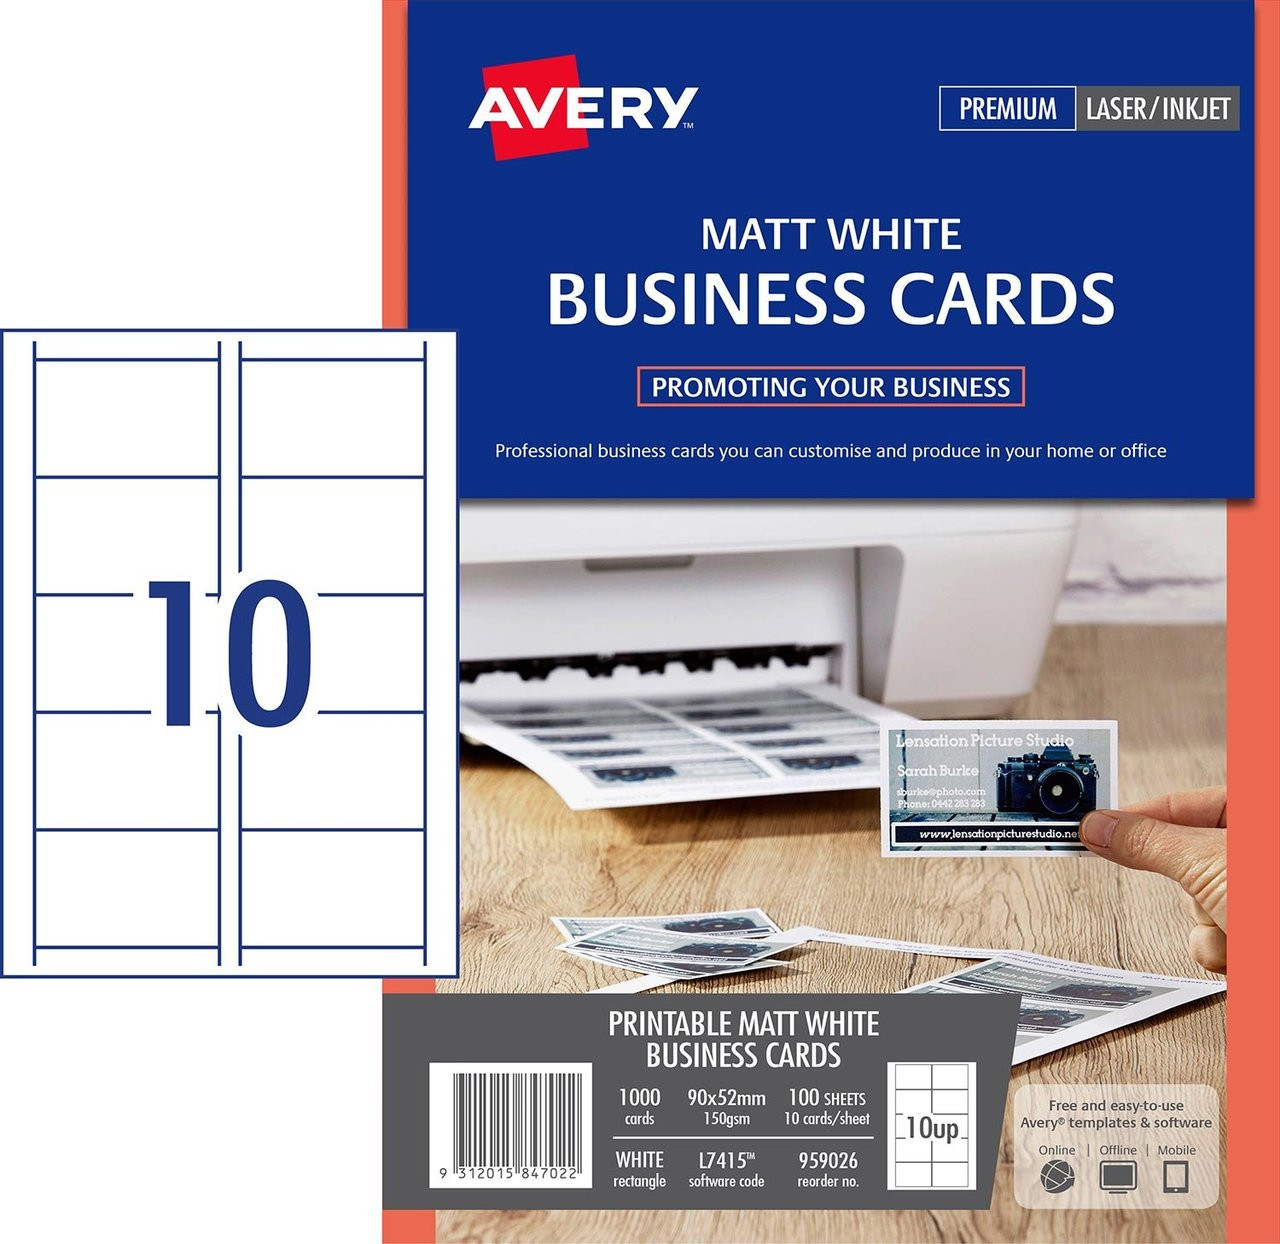 Avery 959026 white micro perforated laser and inkjet business cards matt 150gsm 10up